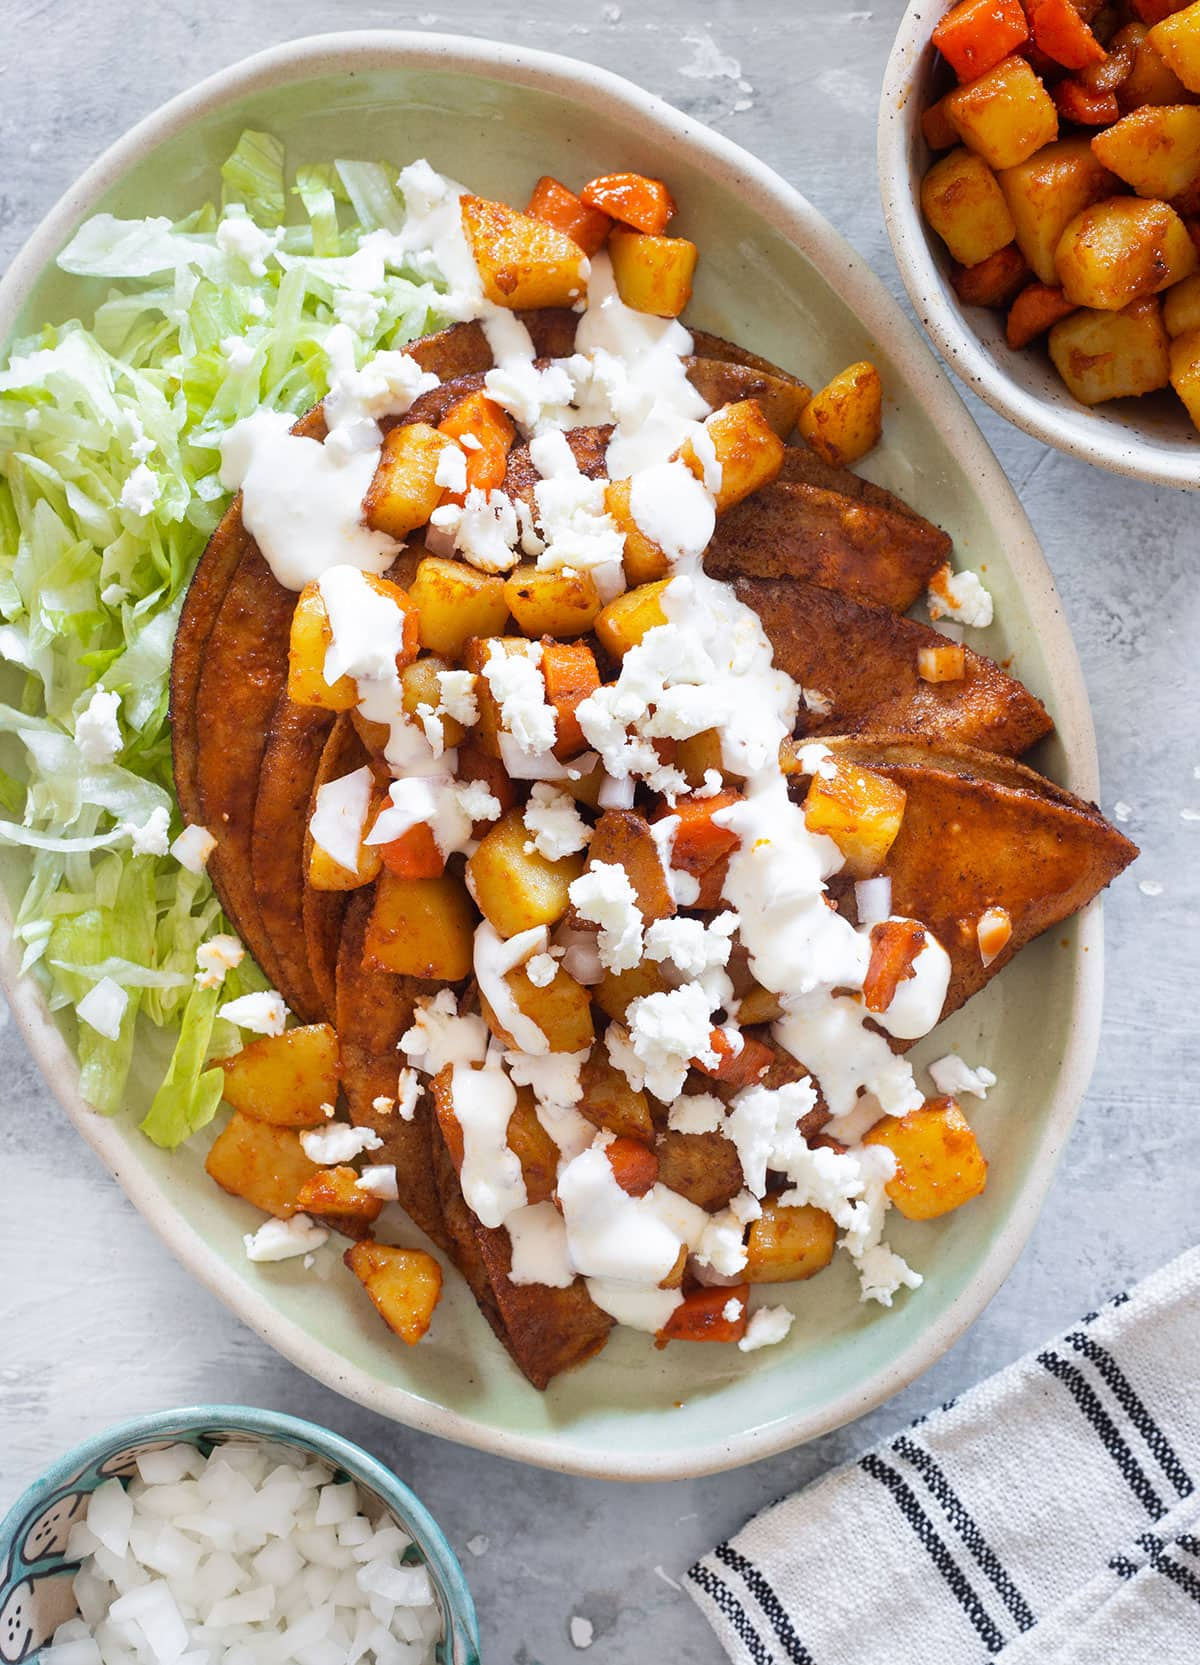 A plate with chicken enchiladas topped with sautéed potatoes and carrots, queso fresco, and cream.